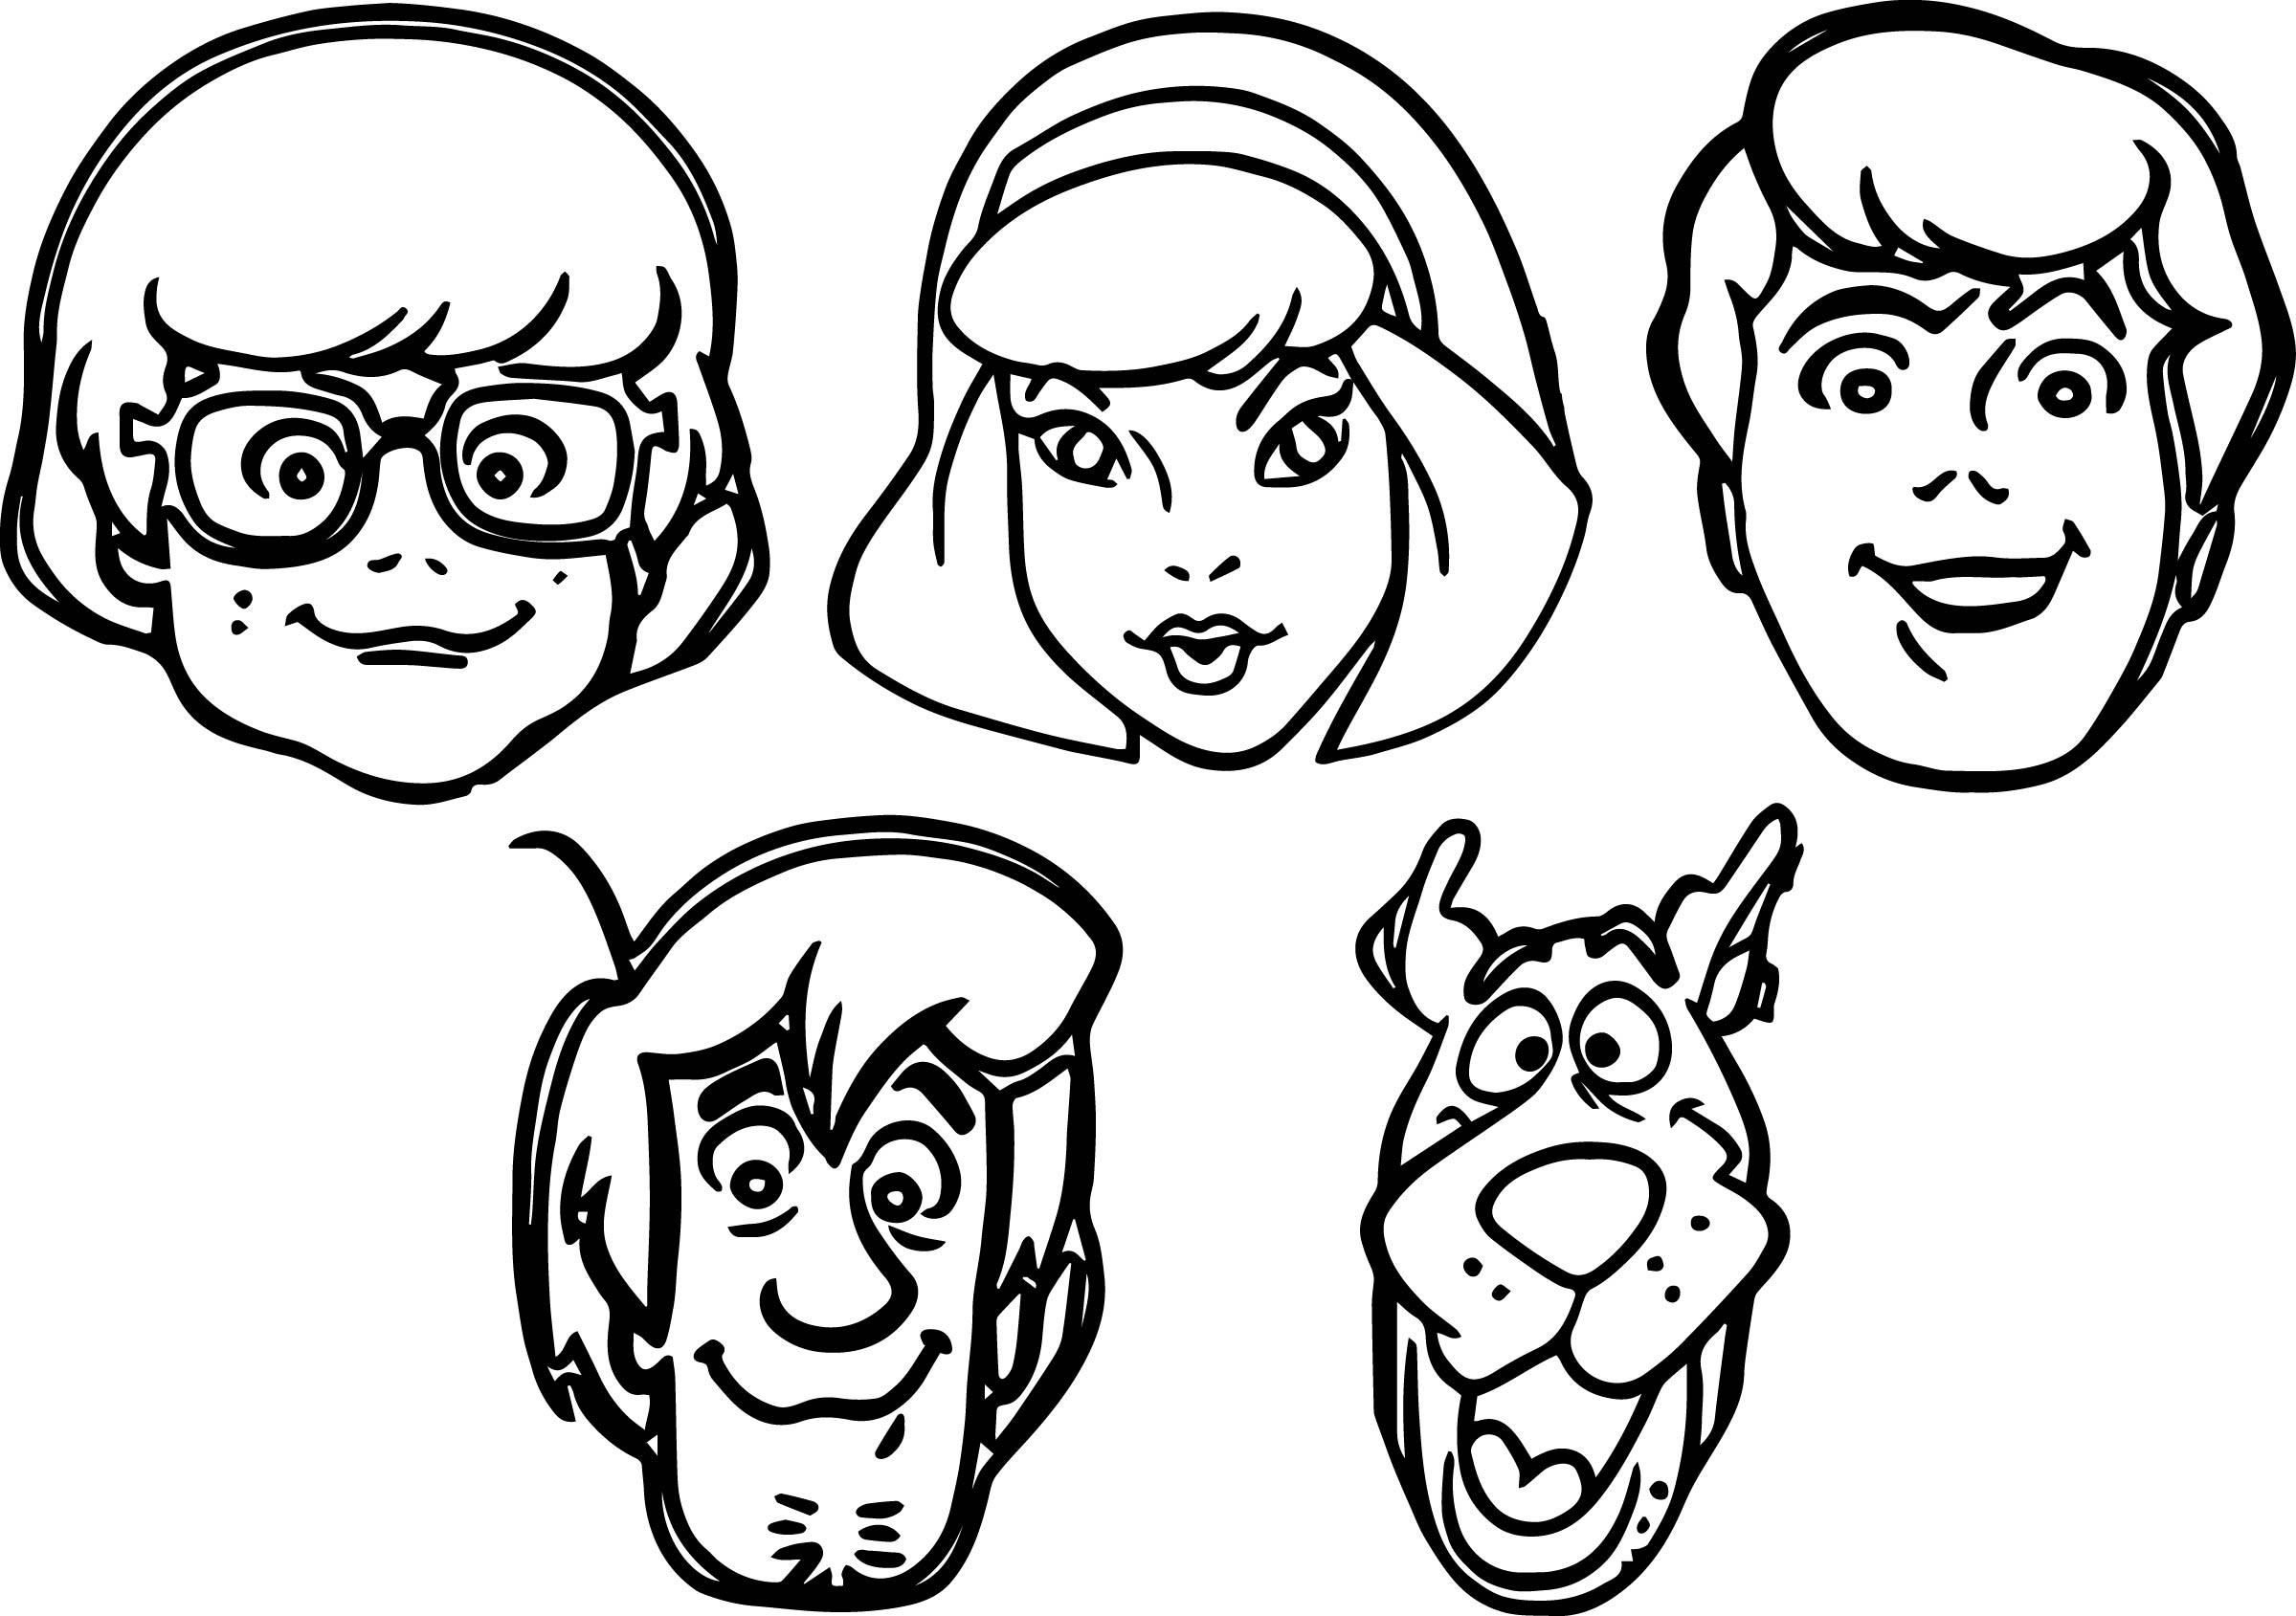 scooby doo all character face coloring page - Scooby Doo Pictures To Colour